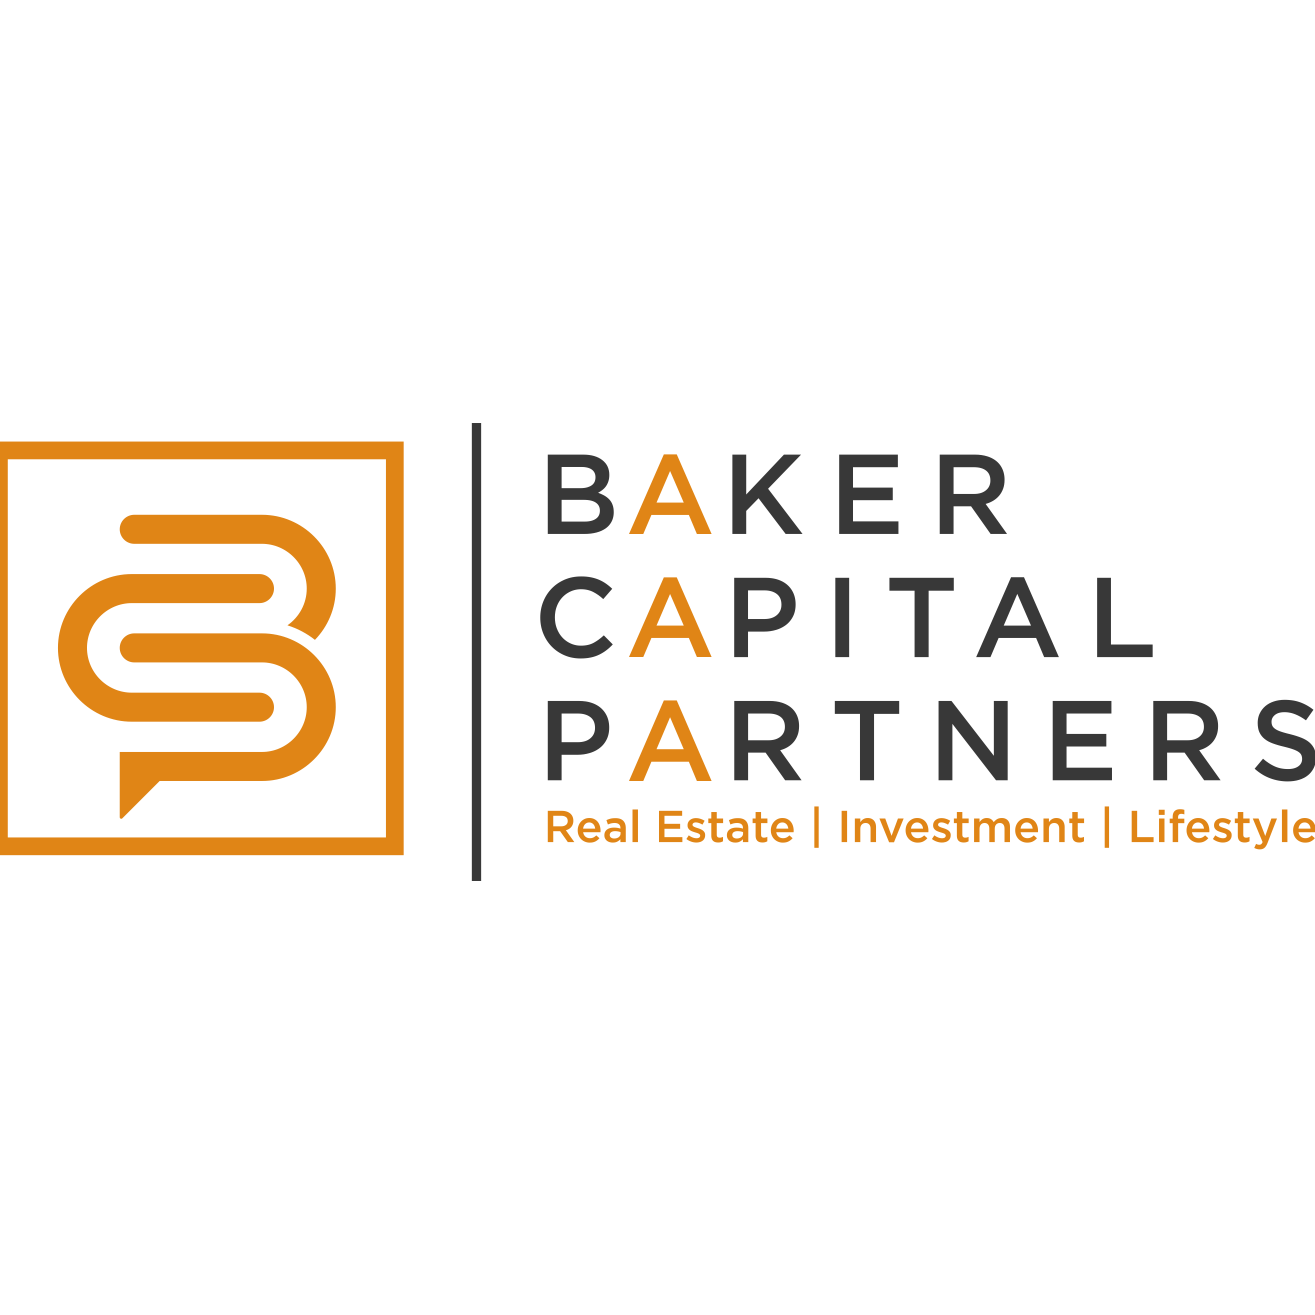 Baker Capital Partners